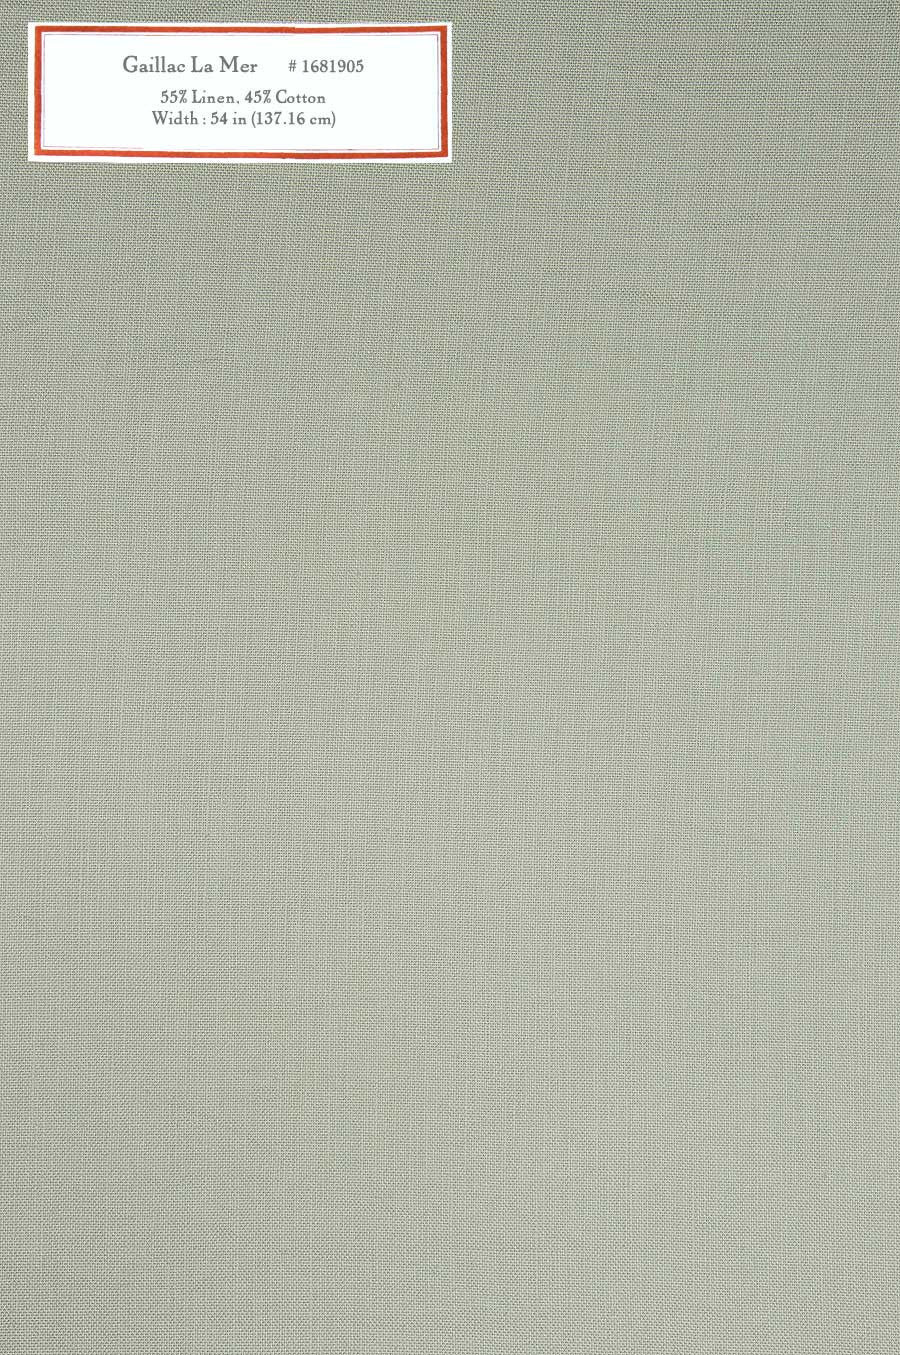 Home Decorative Fabric - Gaillac La Mer